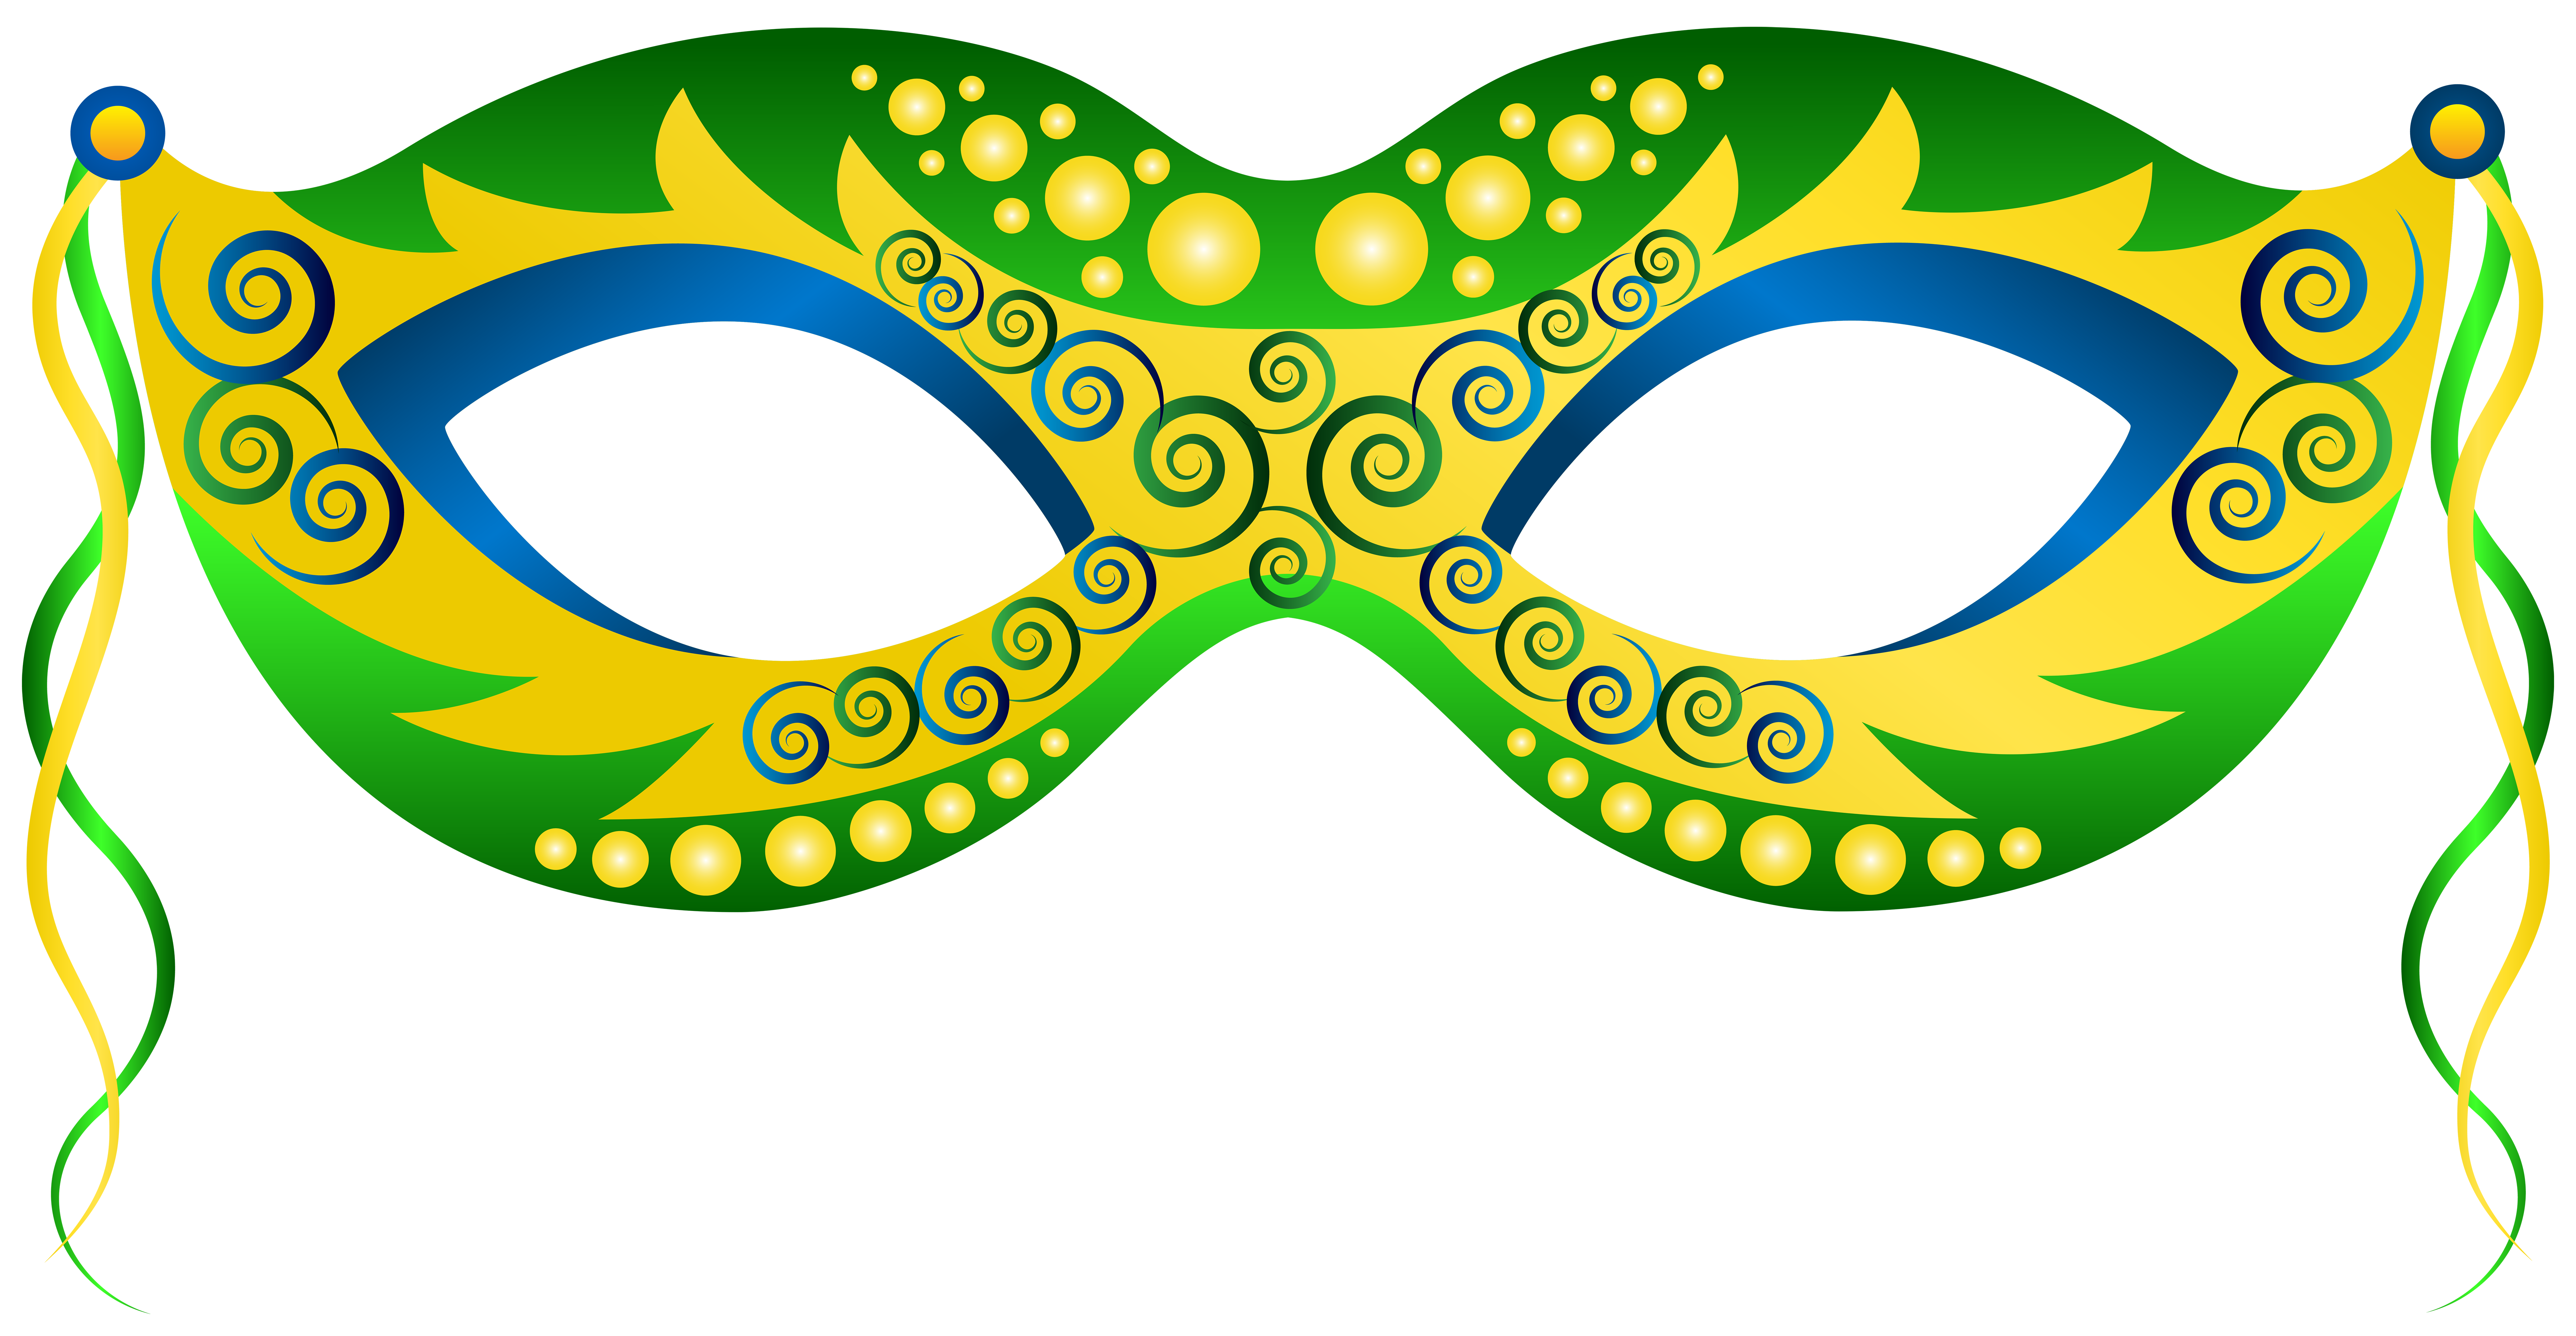 Carnival clipart. Green yellow mask png